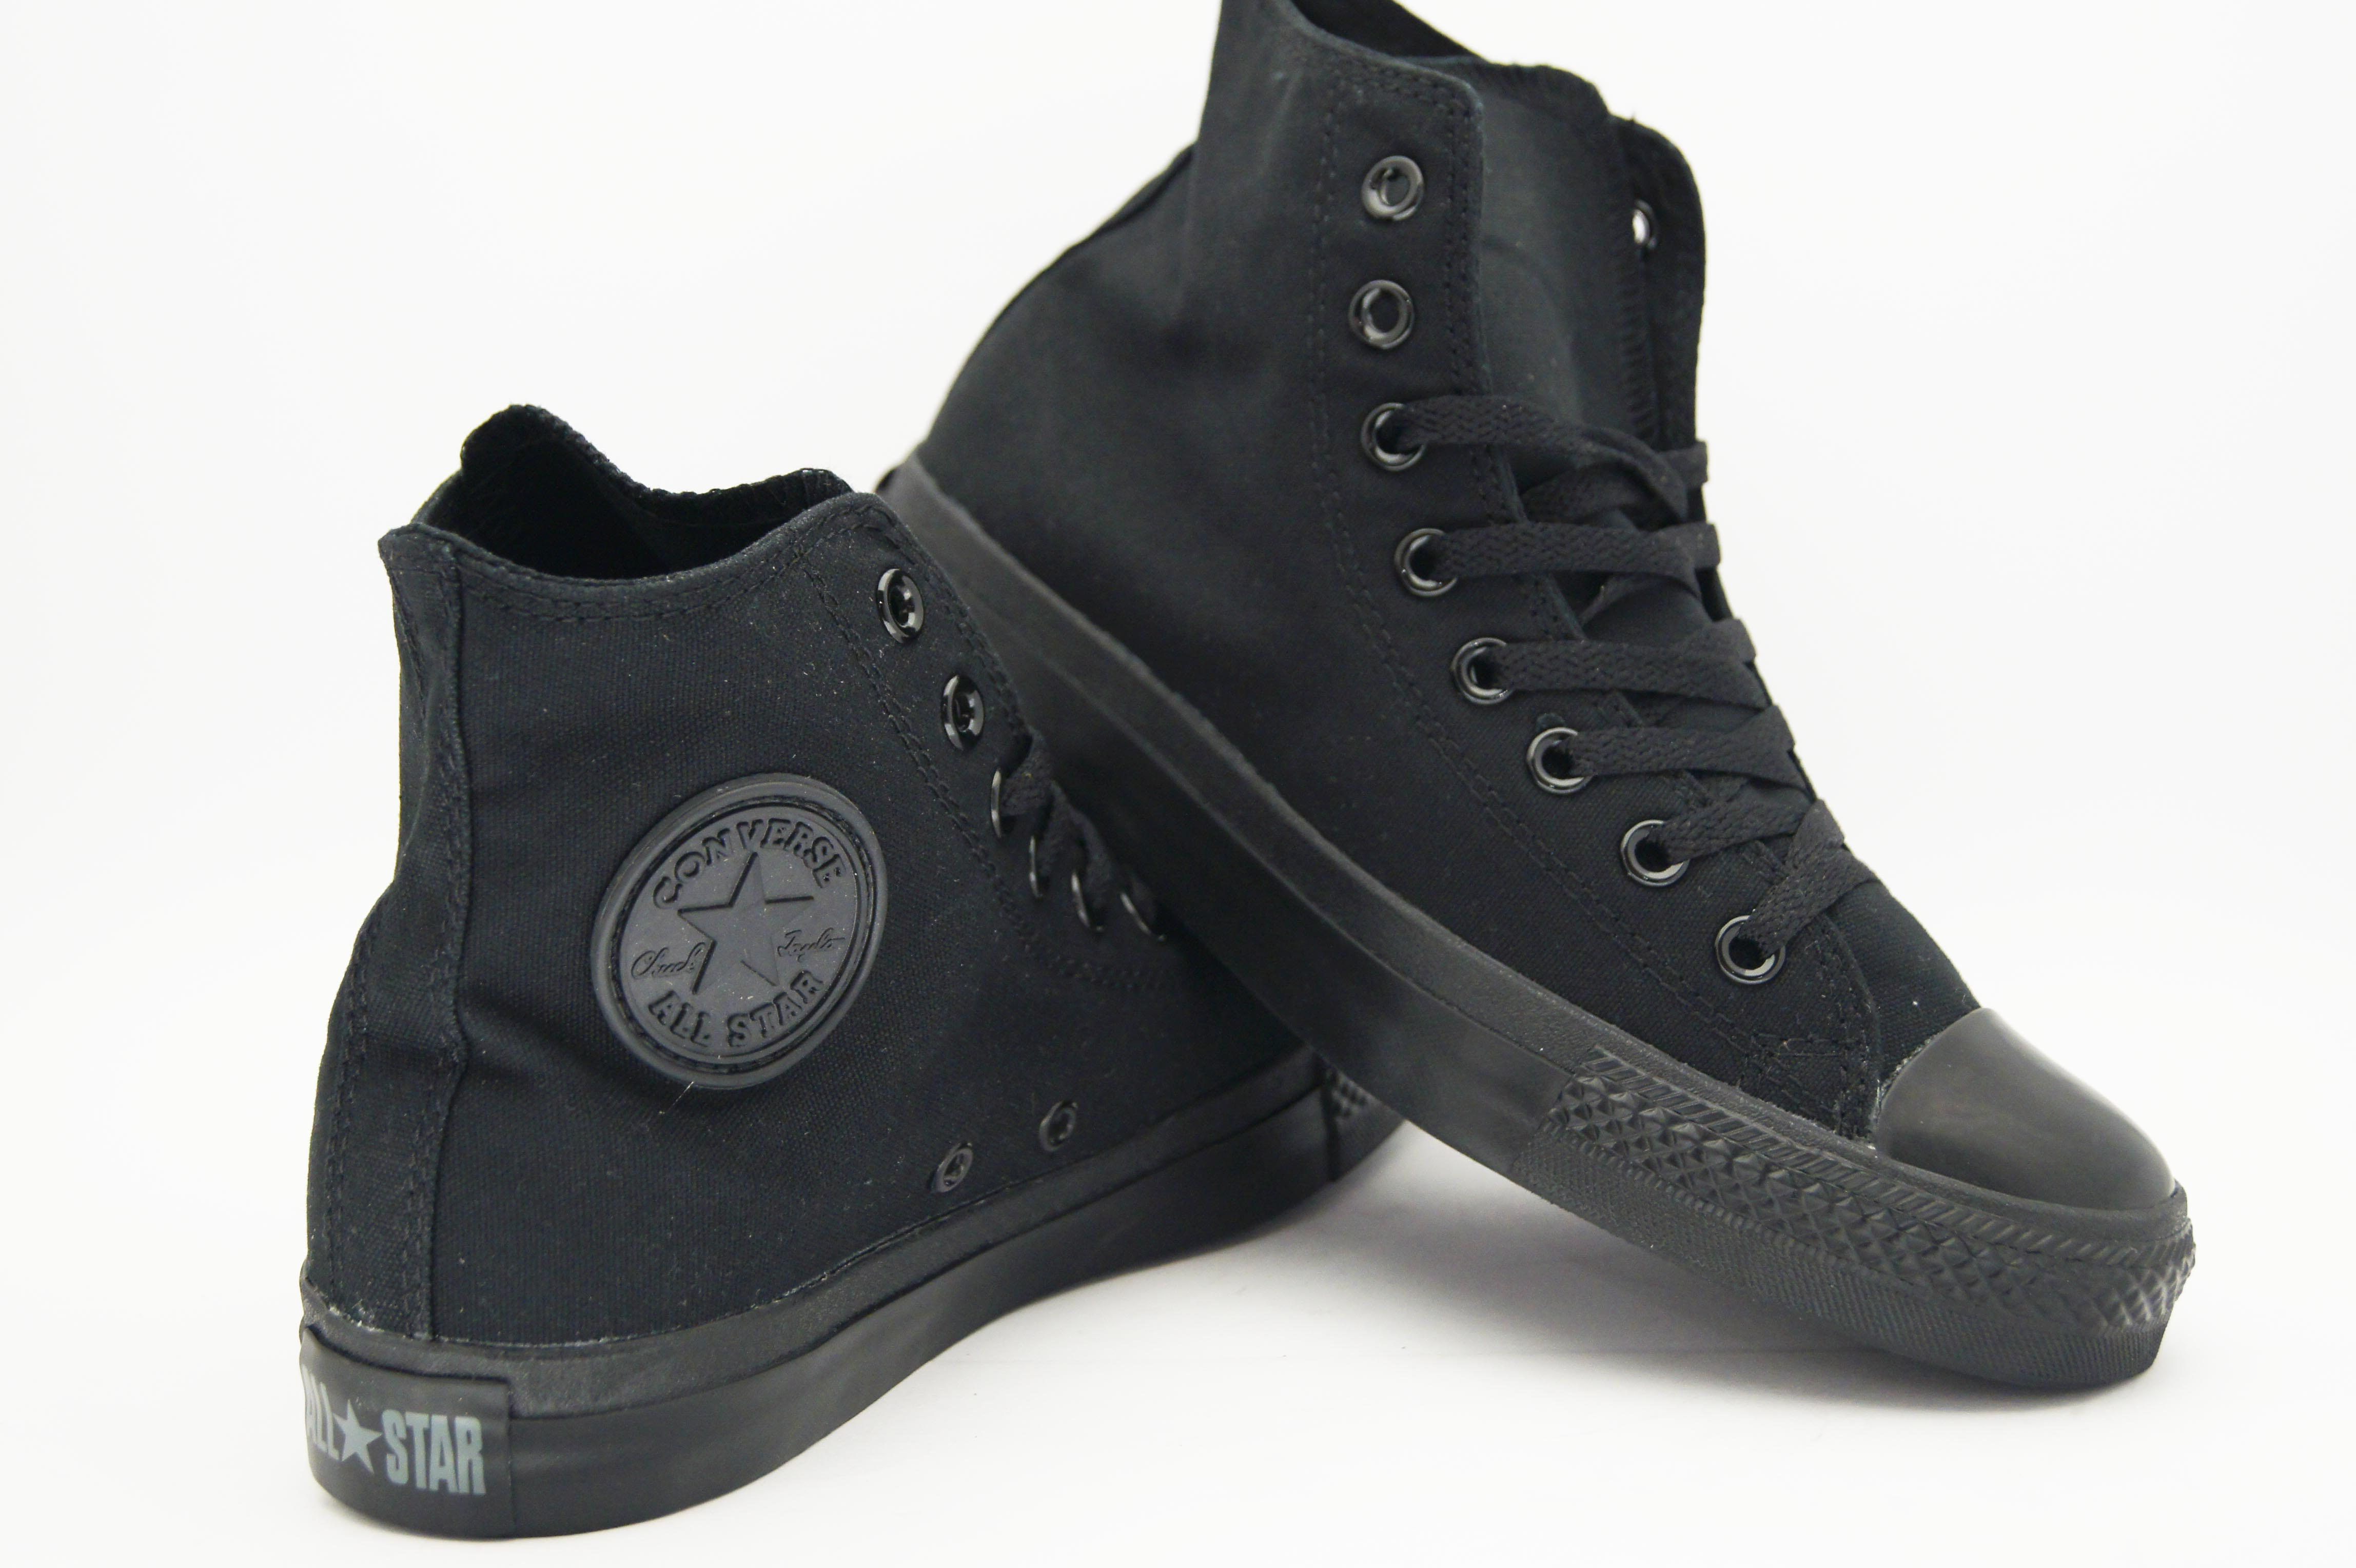 vgtbpn7j Discount all star black converse